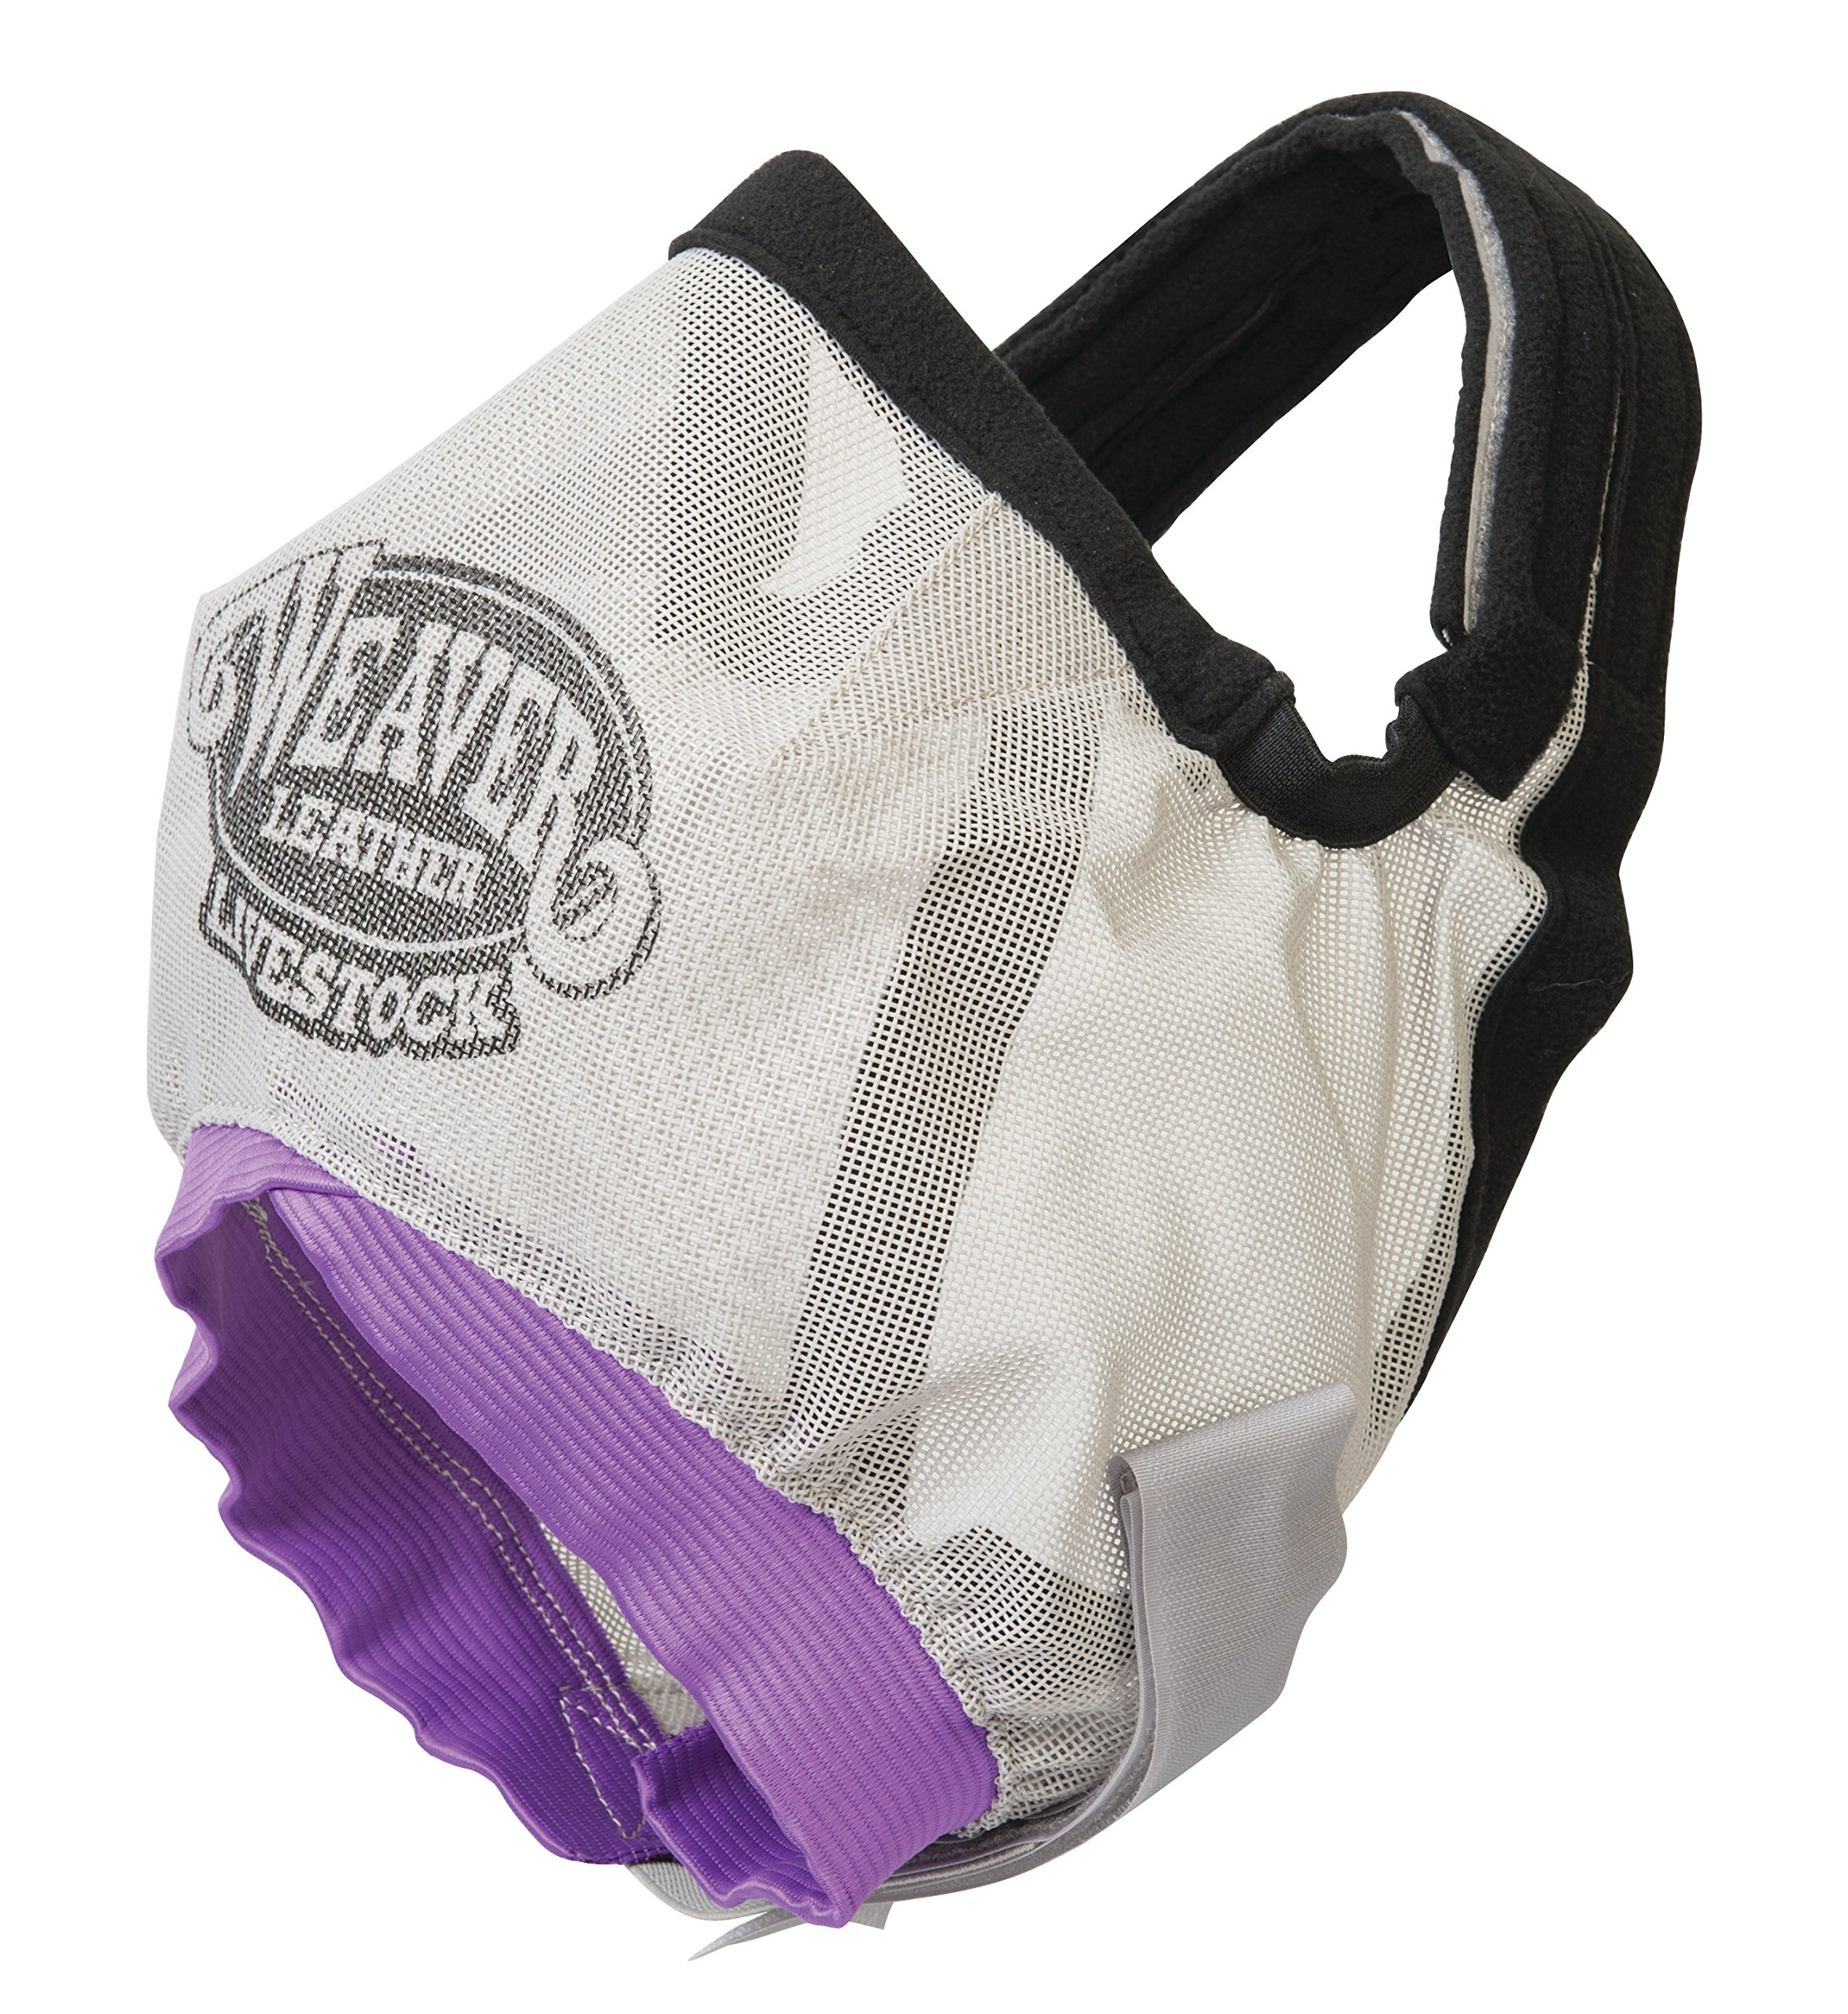 Weaver Leather Livestock Cattle Fly Mask by Weaver Leather